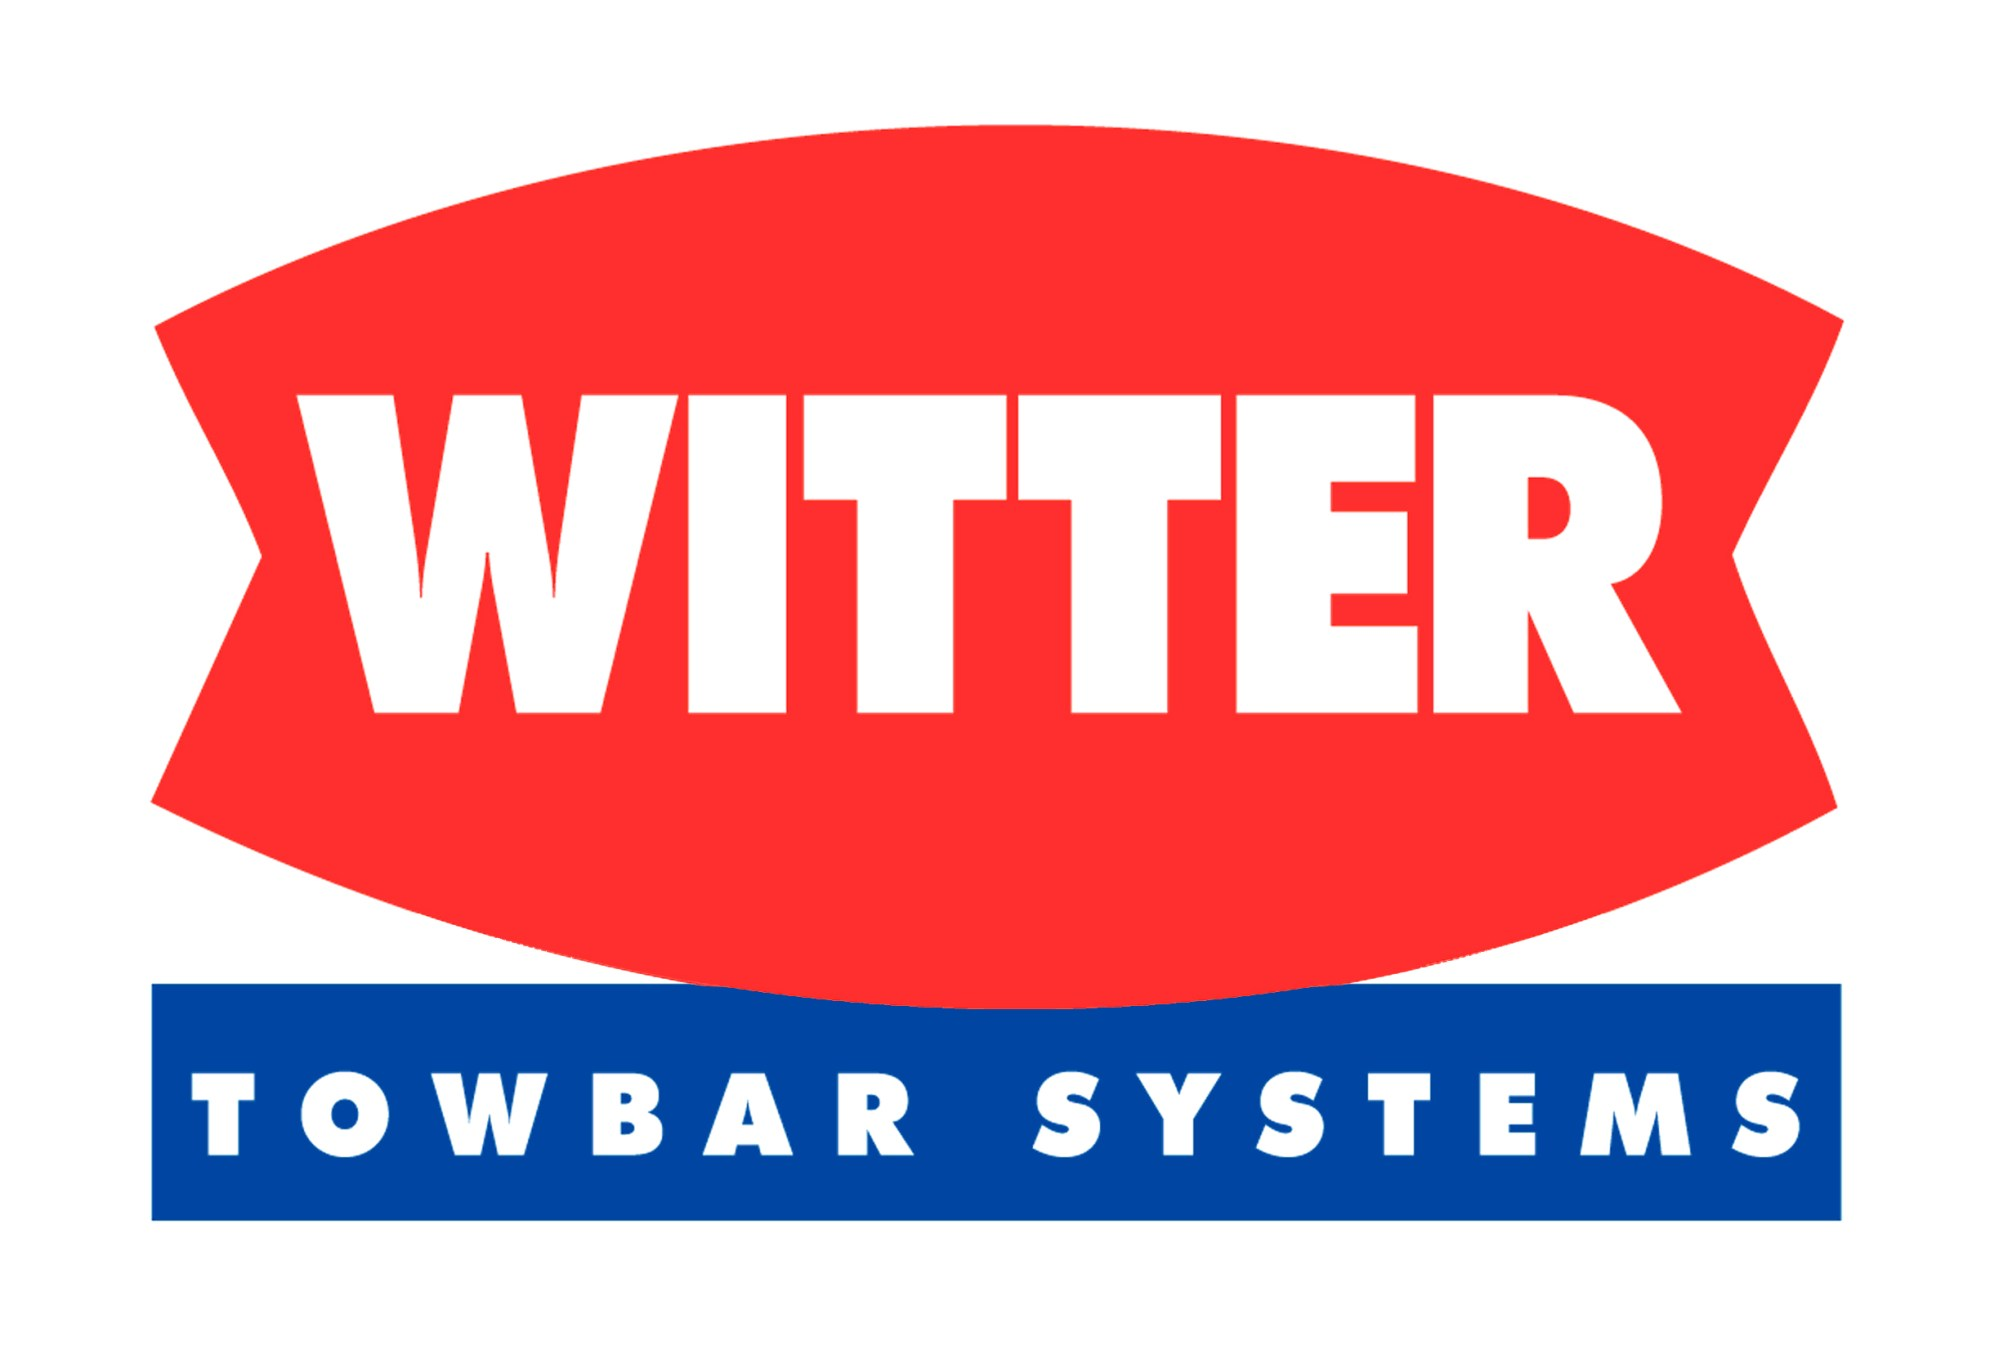 hight resolution of witter logo westfalia logo